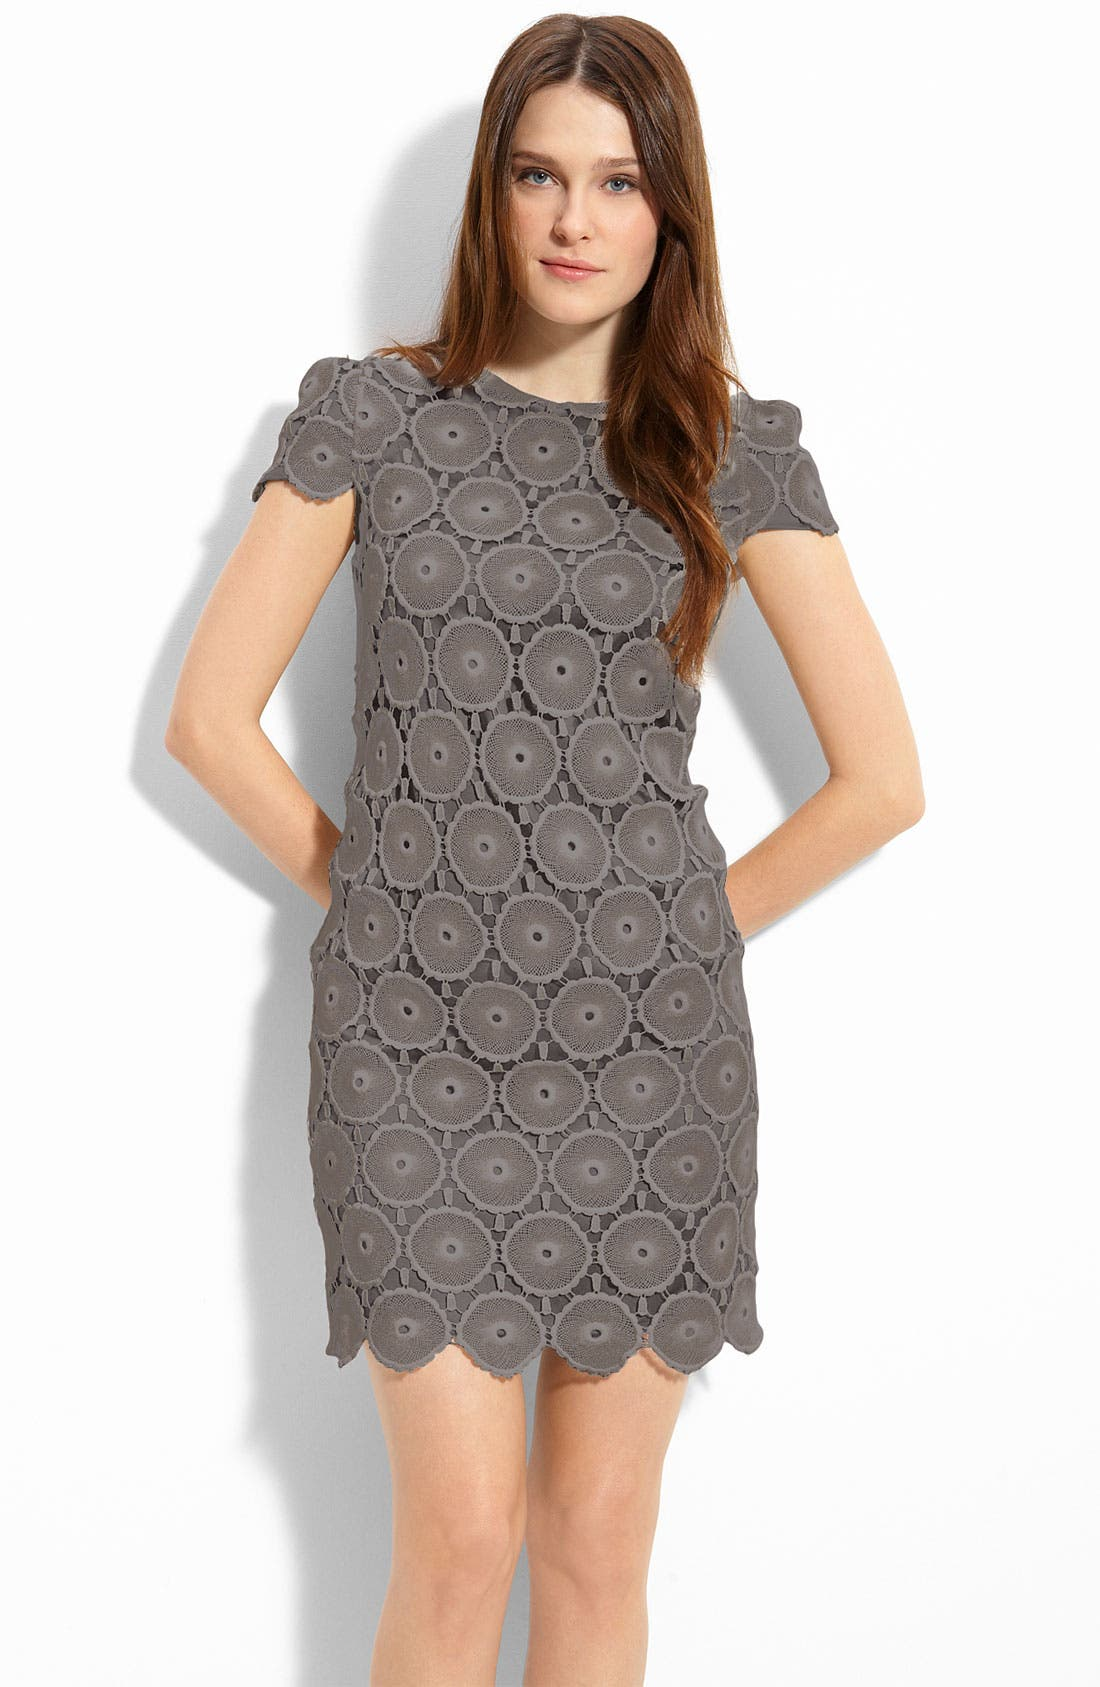 Alternate Image 1 Selected - Suzi Chin for Maggy Boutique Lace Shift Dress